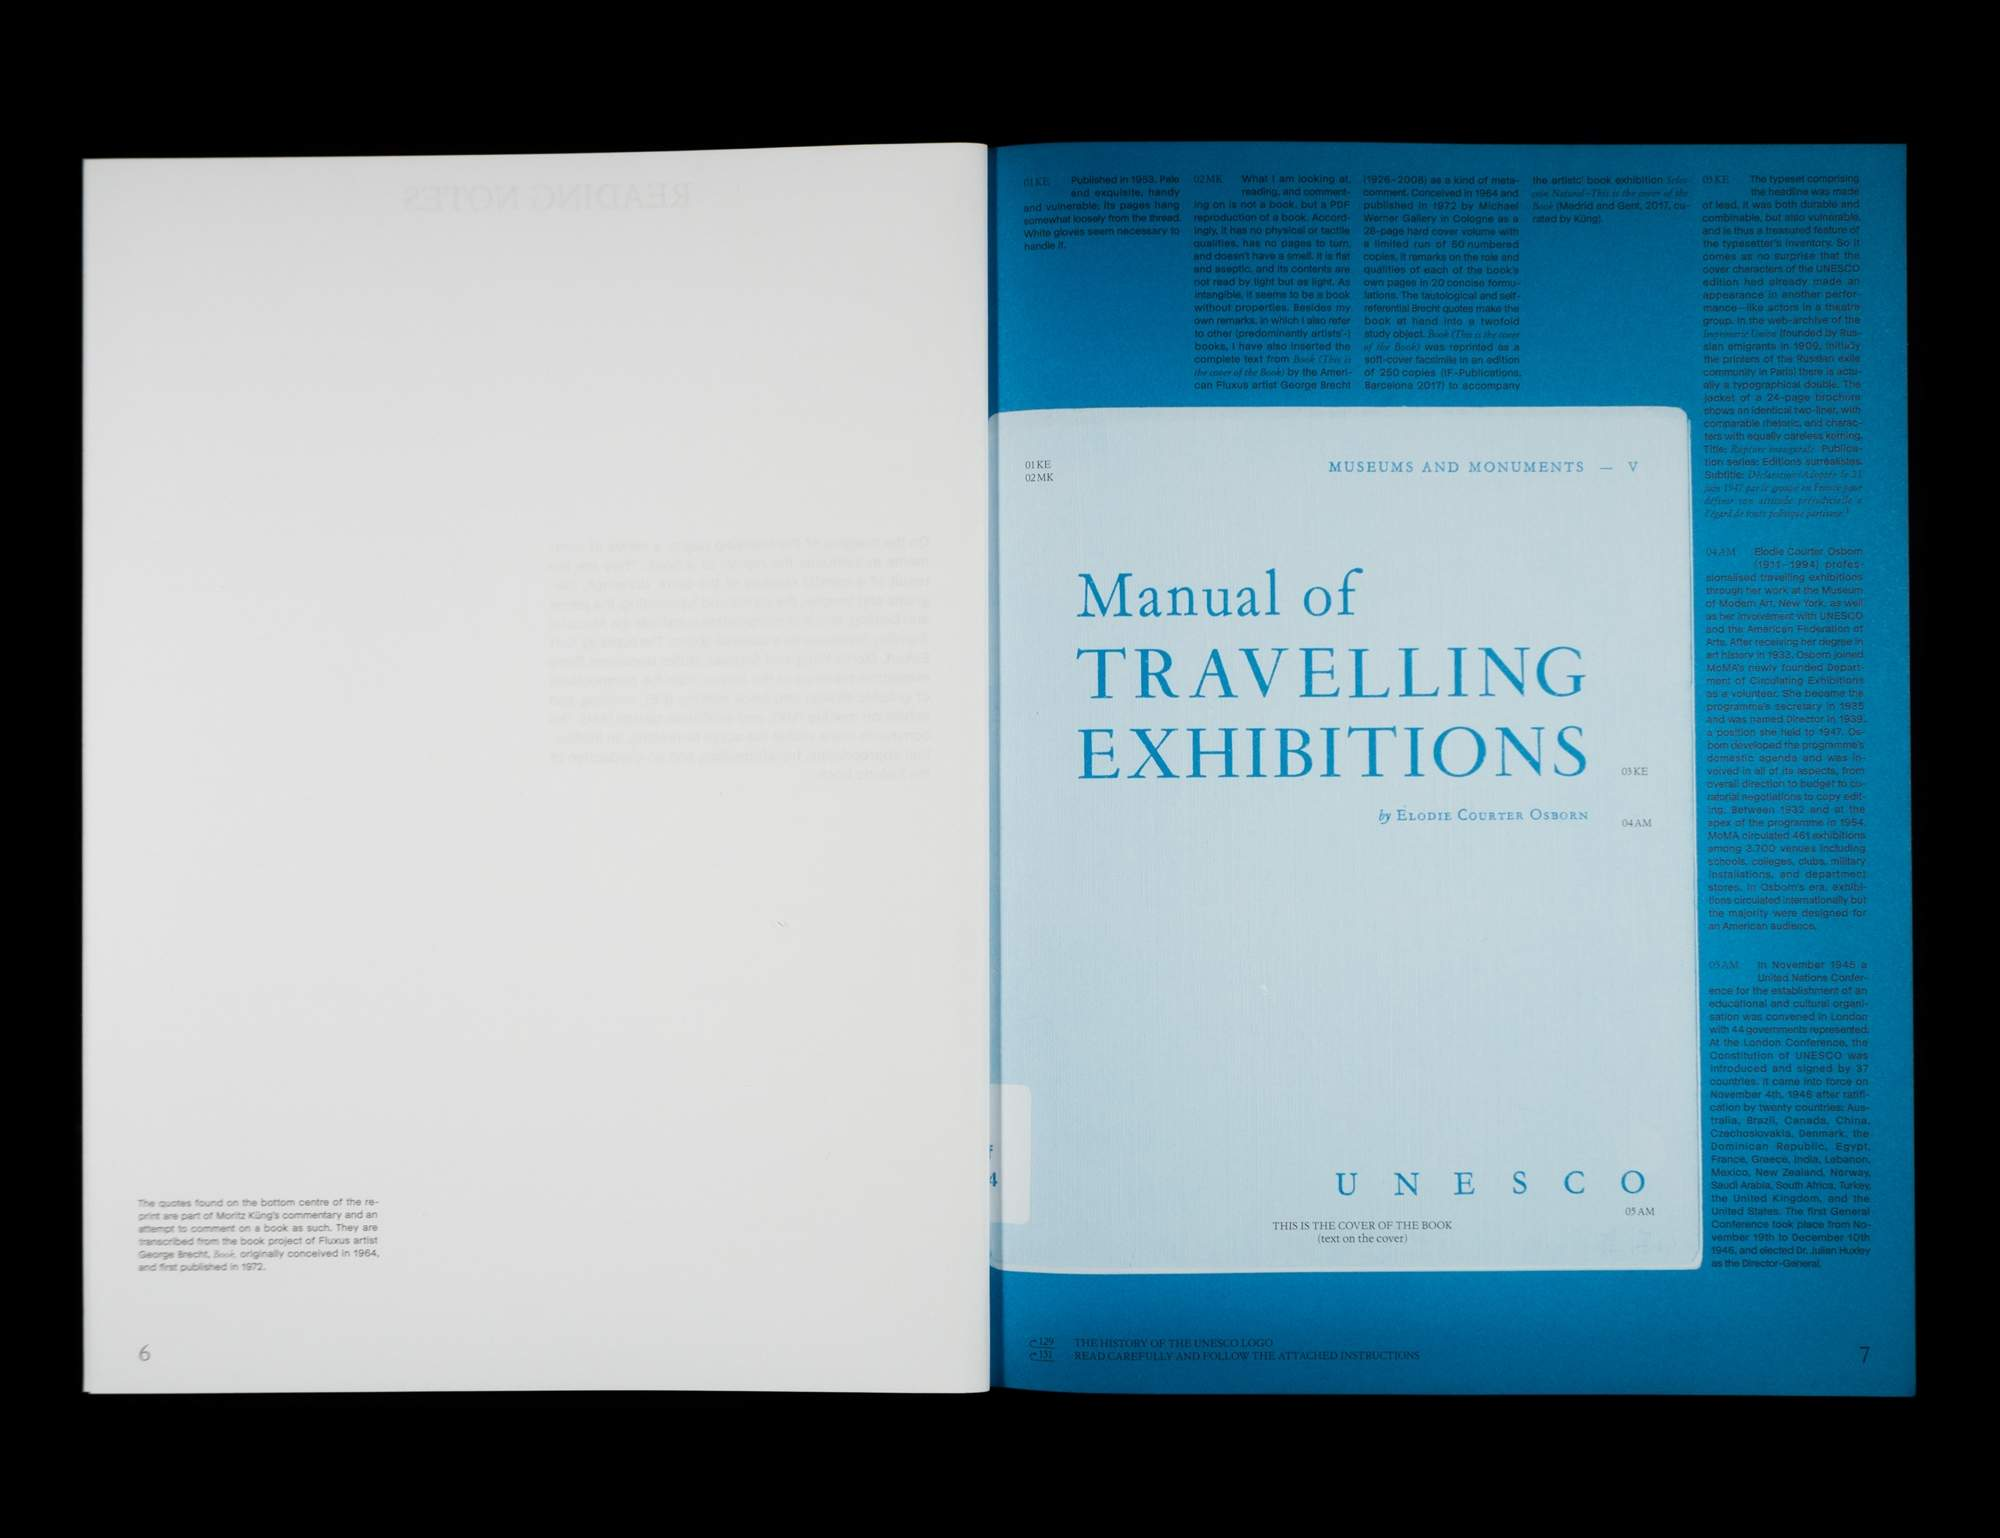 Re reading the Manual Travelling Exhibitions